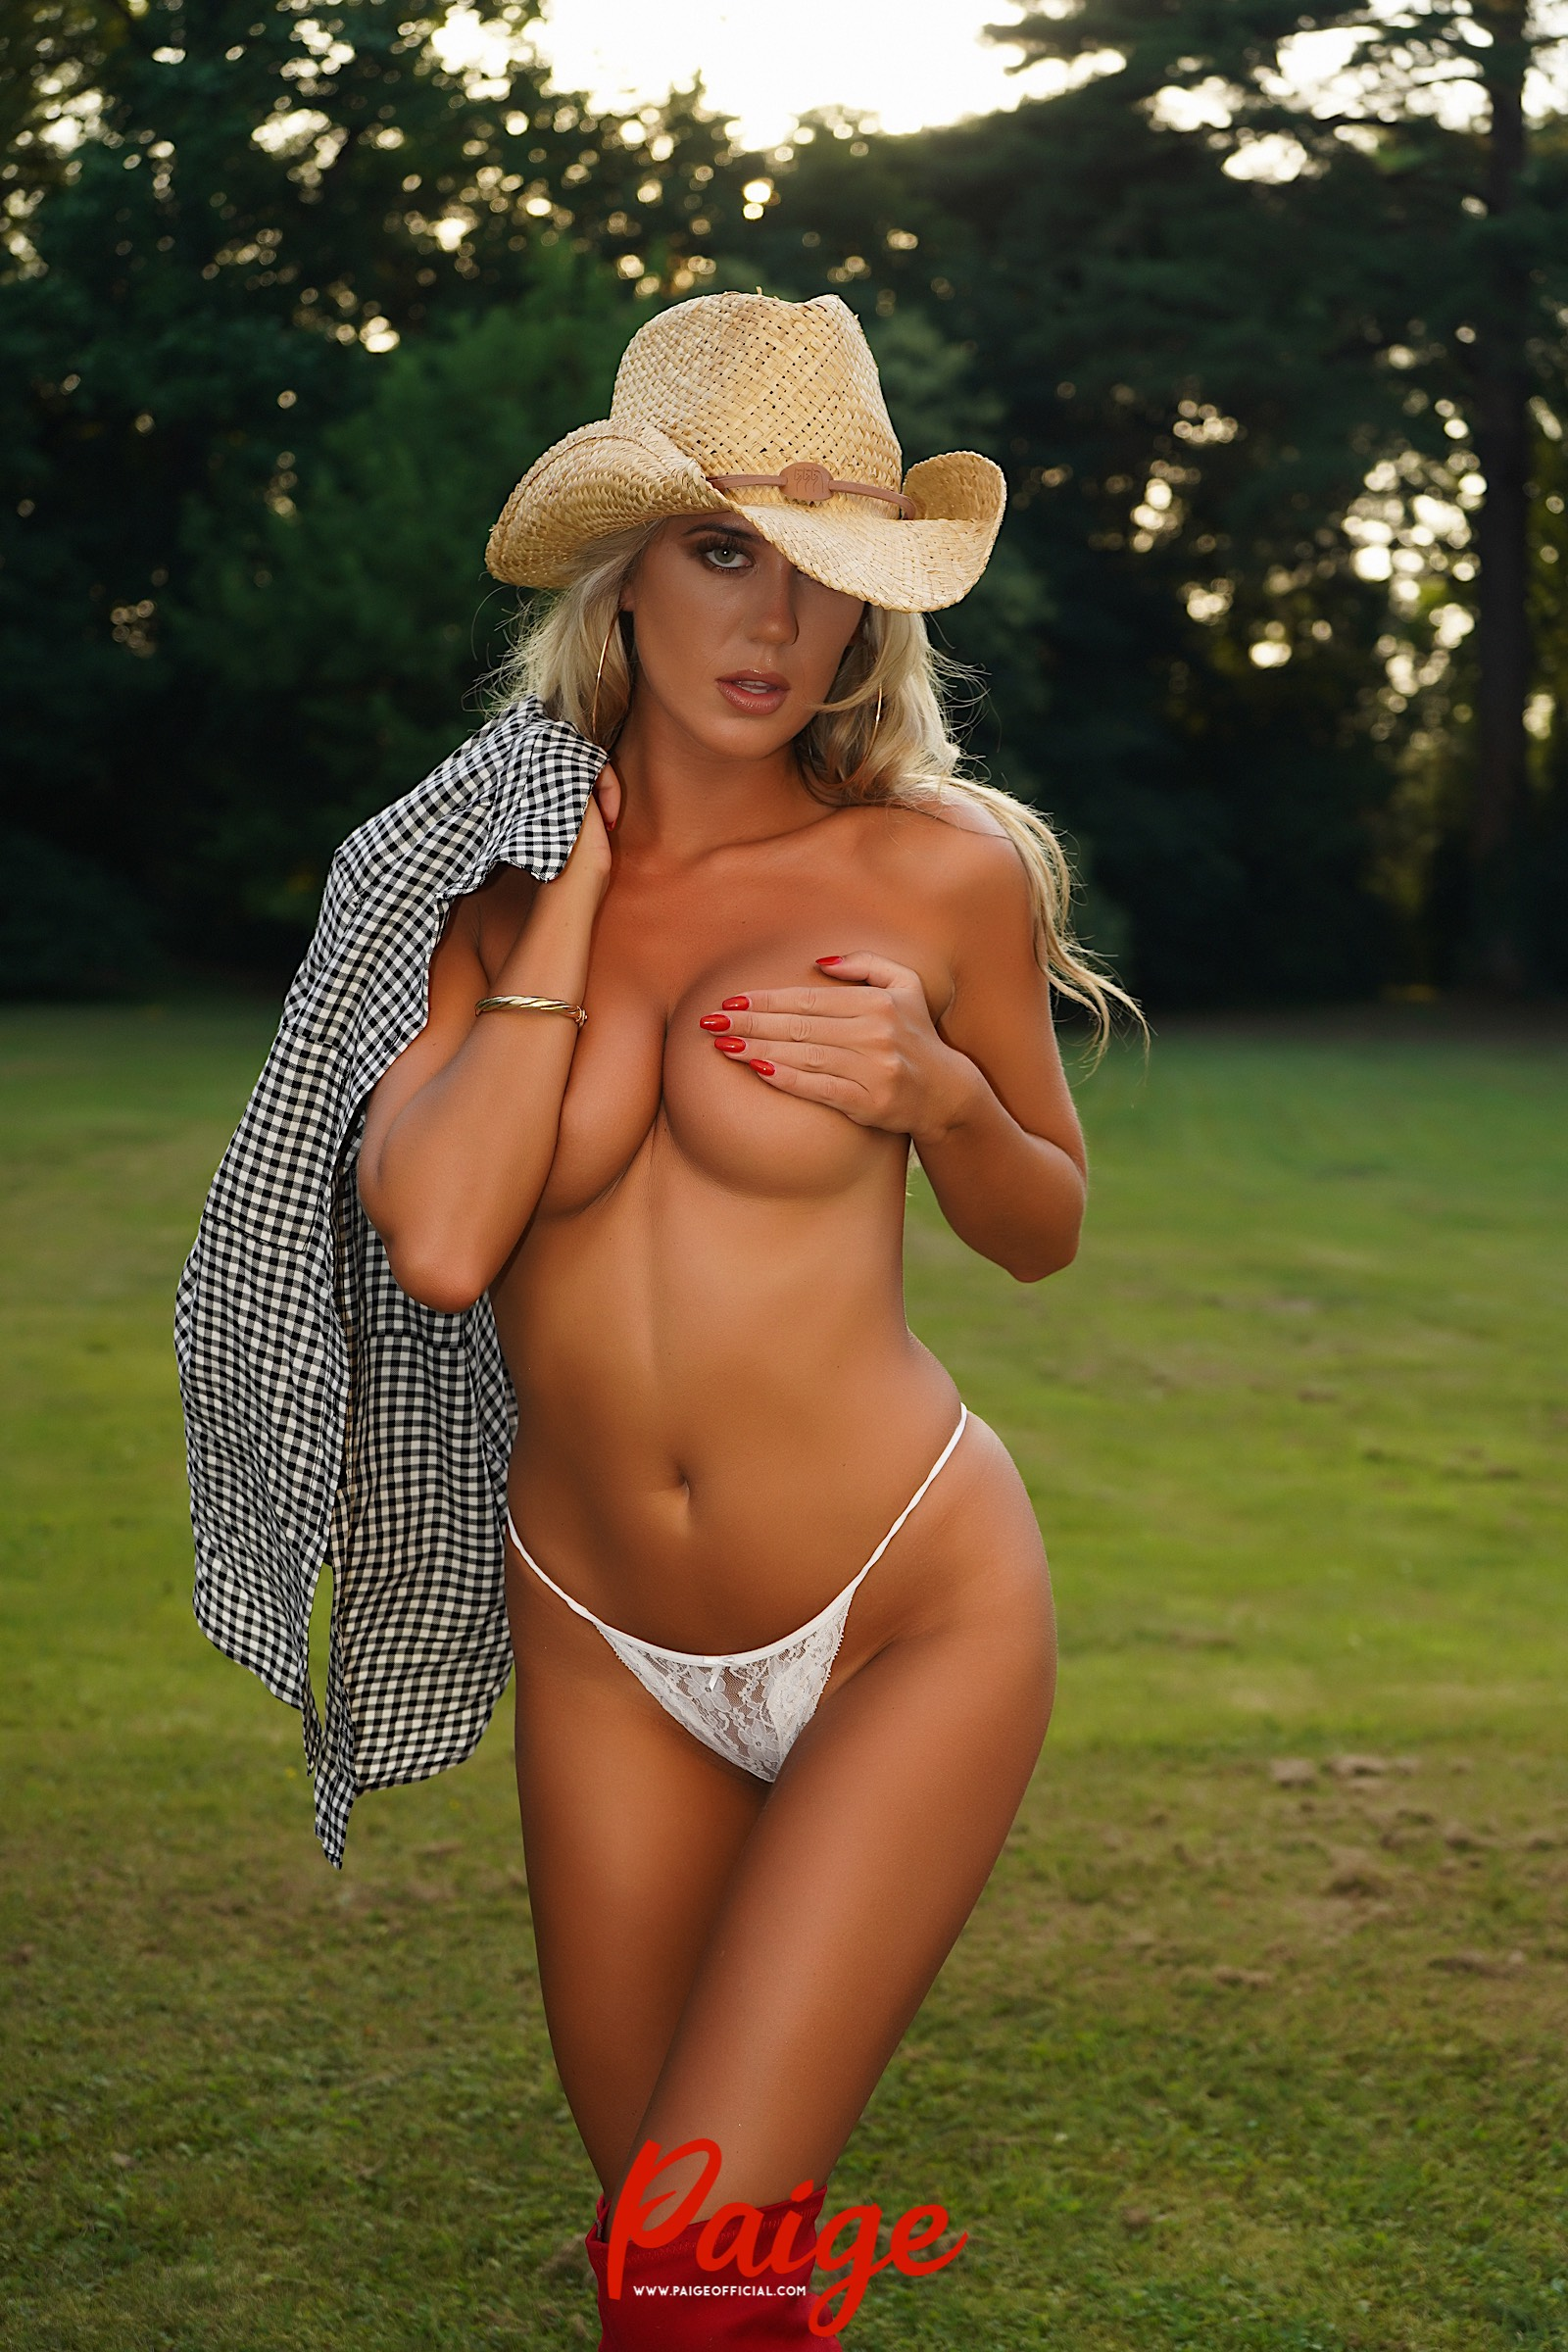 Cowgirl – 120 Uncensored Images